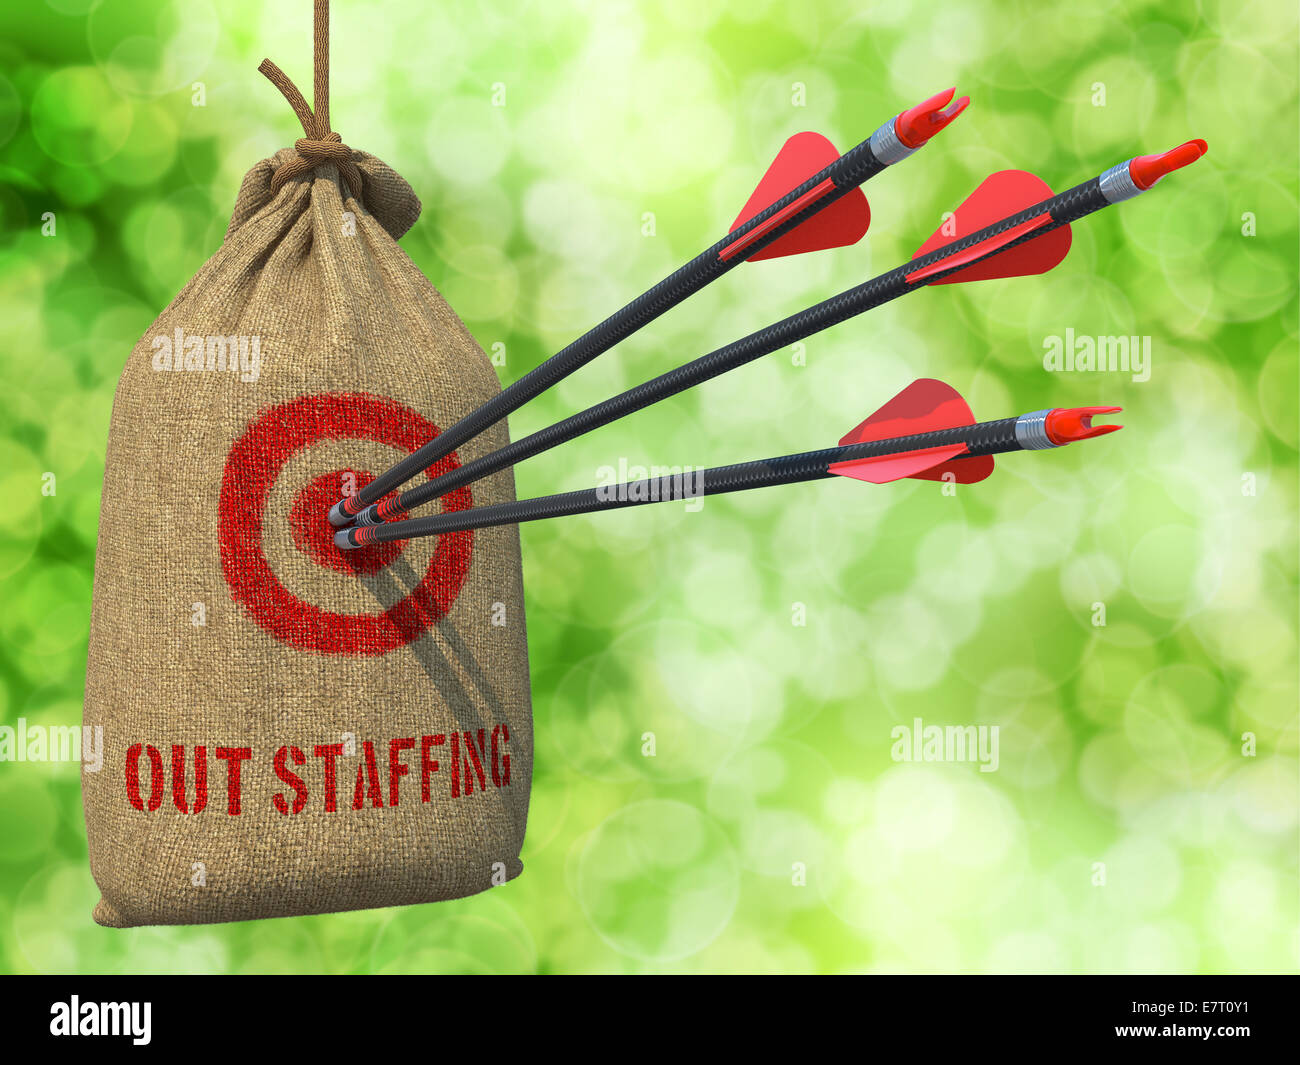 Outstaffing - Arrows Hit in Red Target. - Stock Image